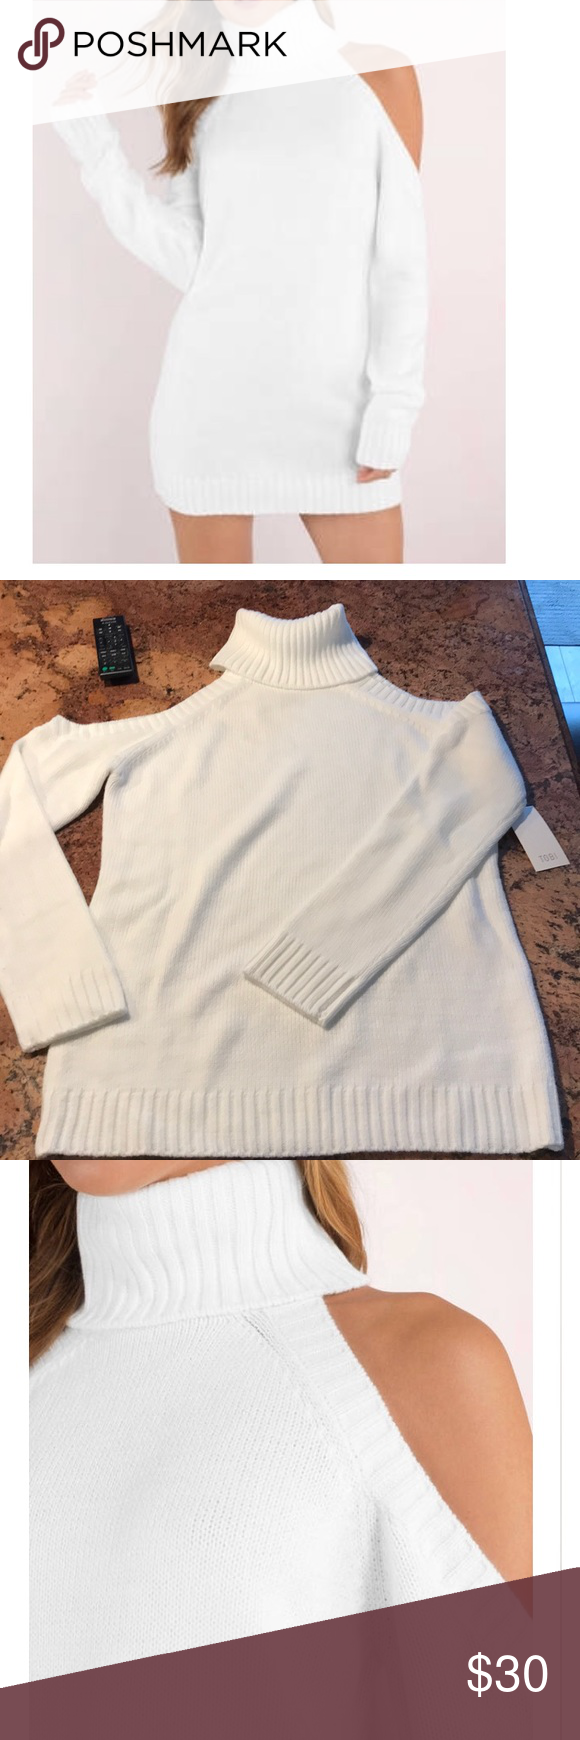 2eae70cff0b Tobi Give Love White Sweater Dress NWT. Turtle neck with cold shoulder.  Pair this sweater with tights and over the knee boots.